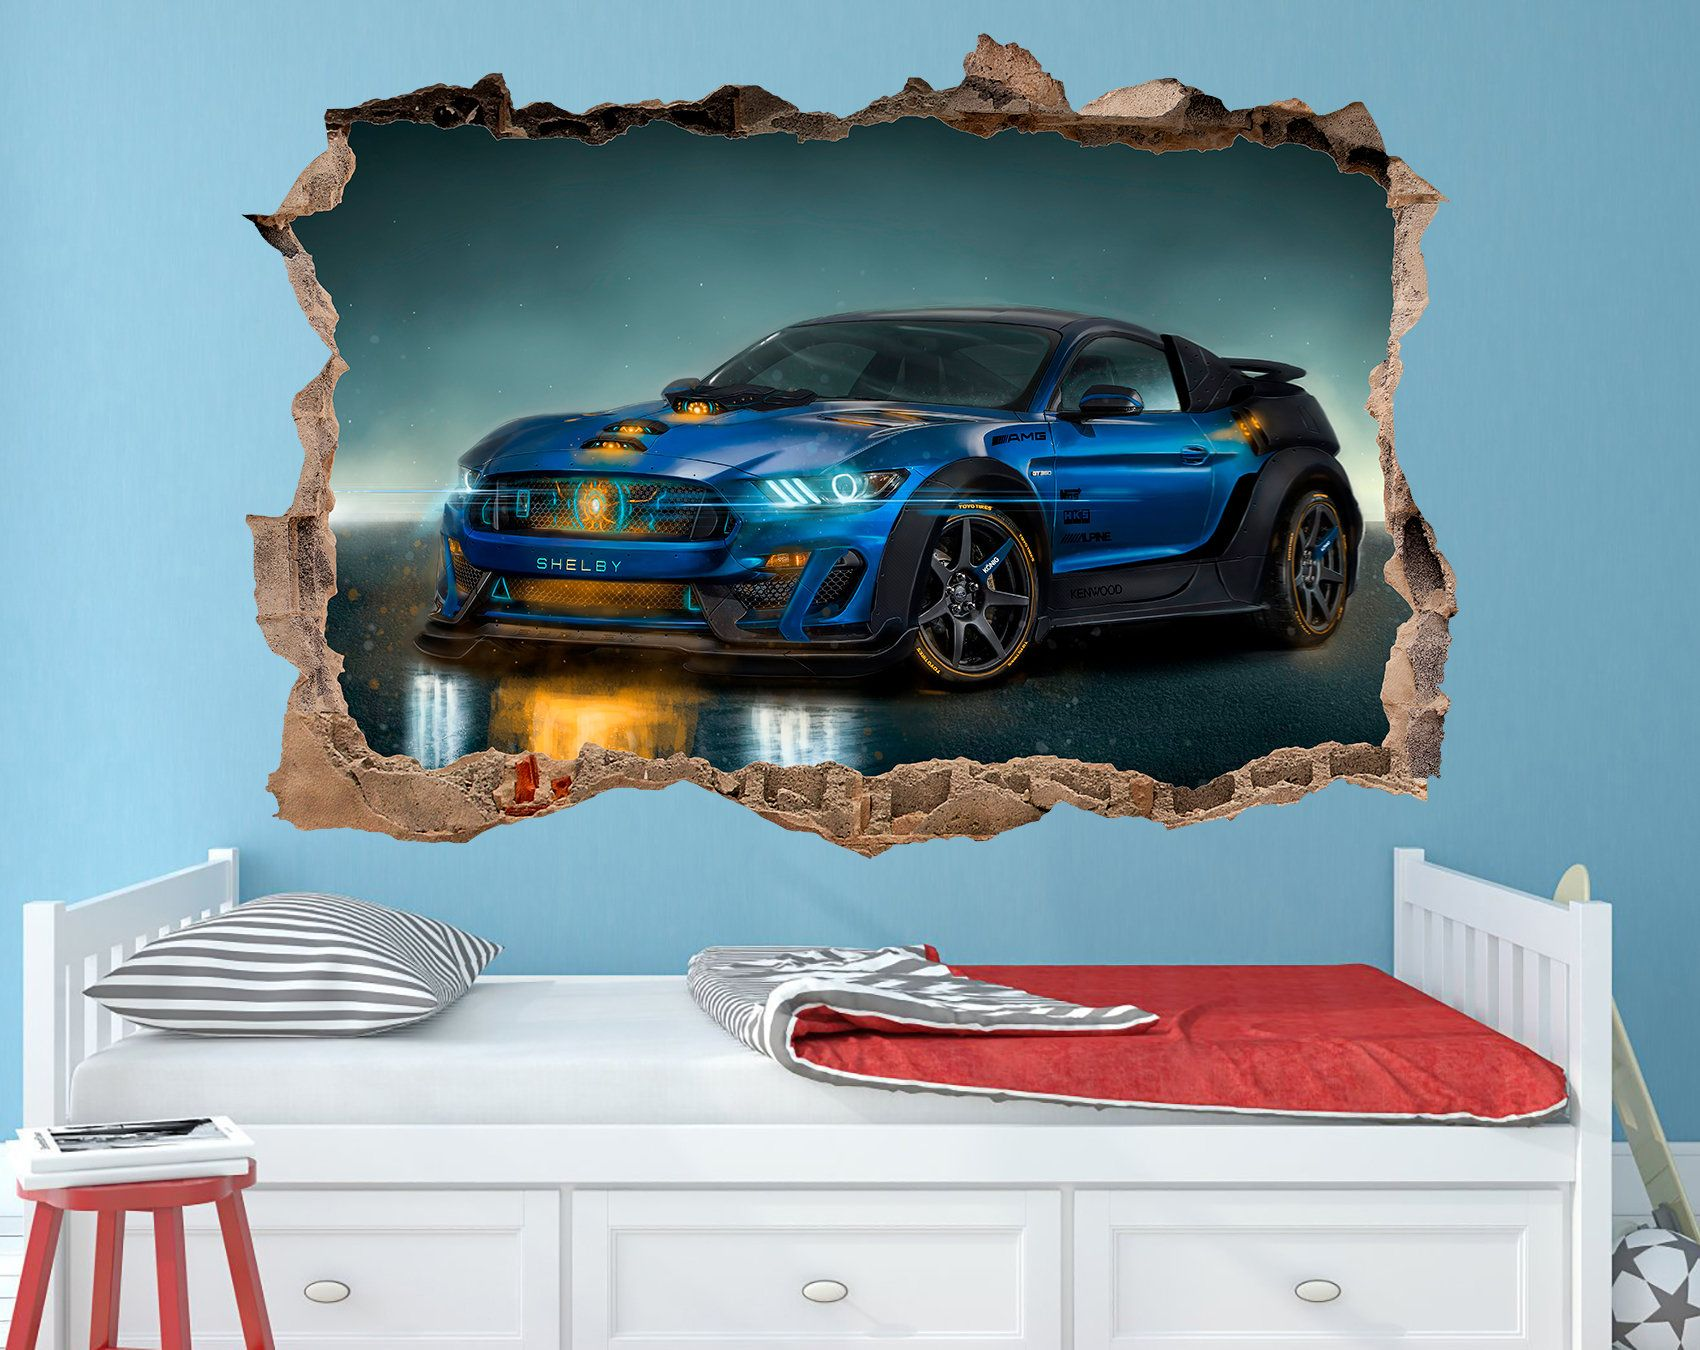 Ford Mustang Decal Ford Mustang Vinyl Sticker Ford Wall Decal Etsy Super Cars Ford Mustang Kids Room Decals [ 1350 x 1700 Pixel ]